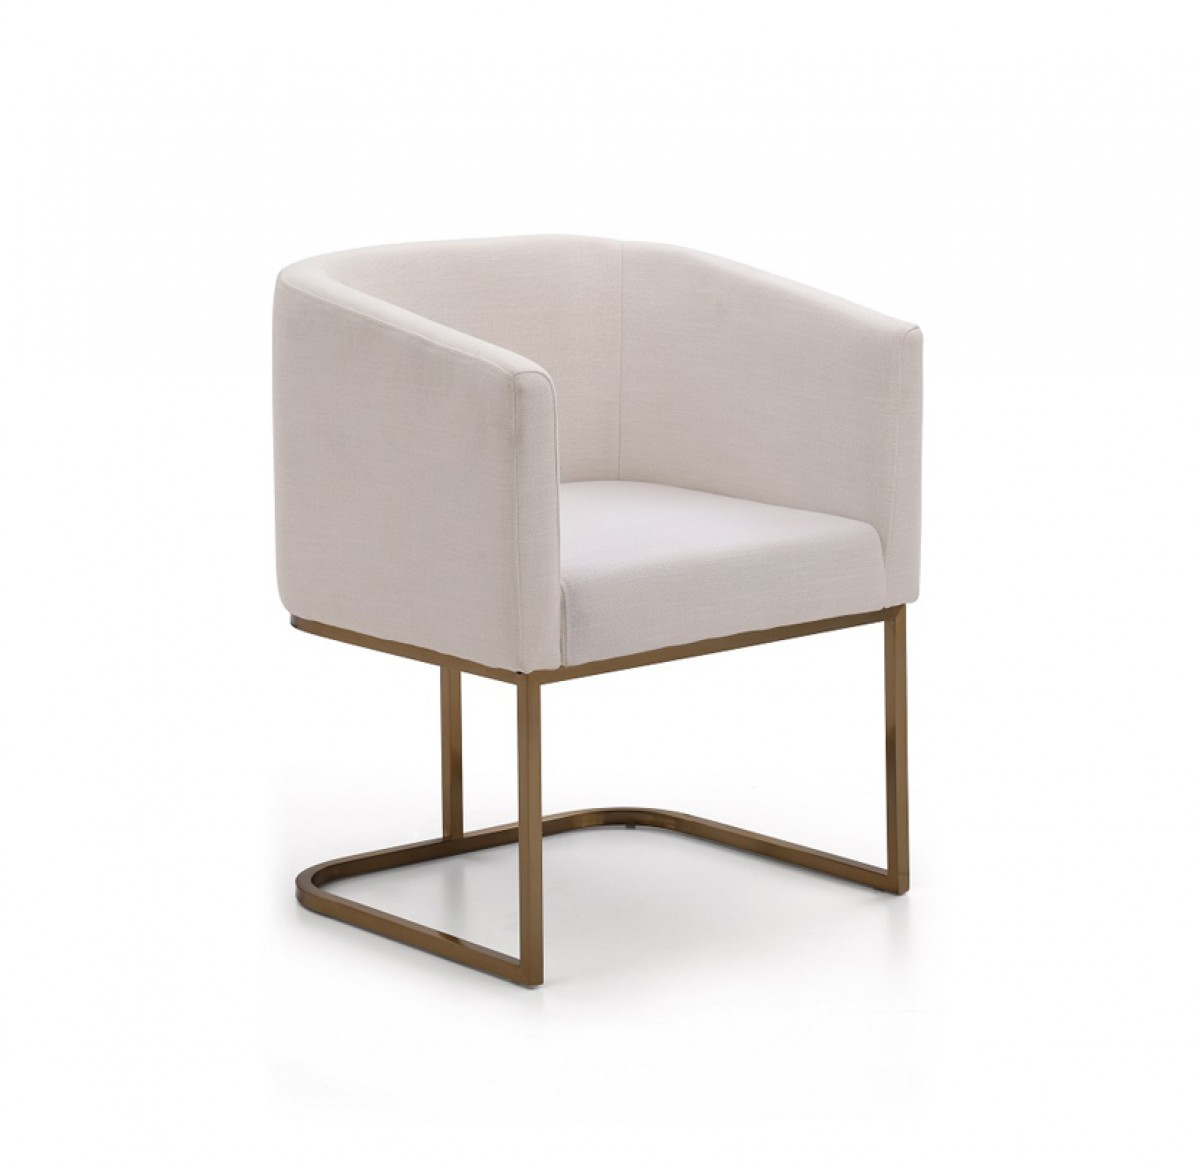 White Modern Chair Modrest Yukon Modern White Fabric And Antique Brass Dining